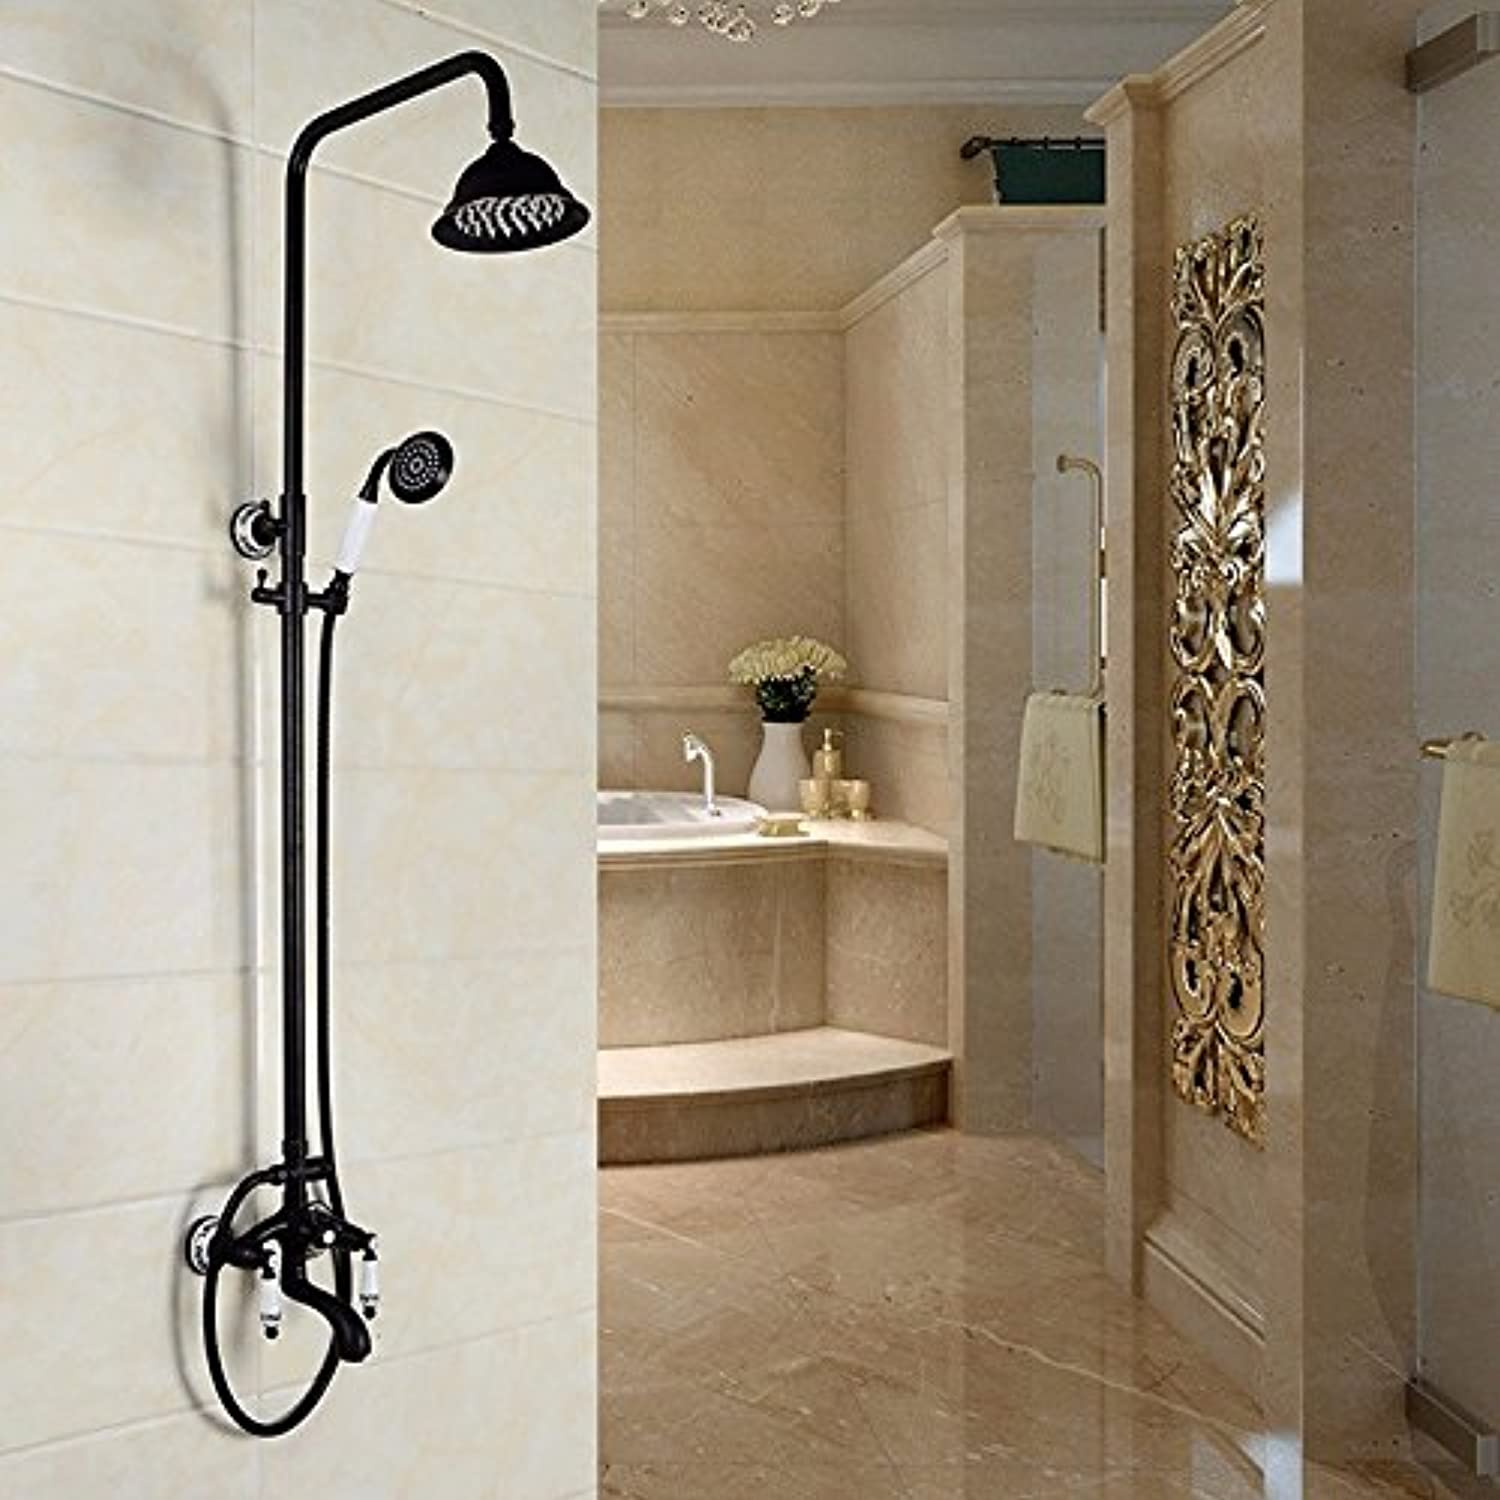 Wall-mounted redatable belt lift all copper antique pull shower shower faucet